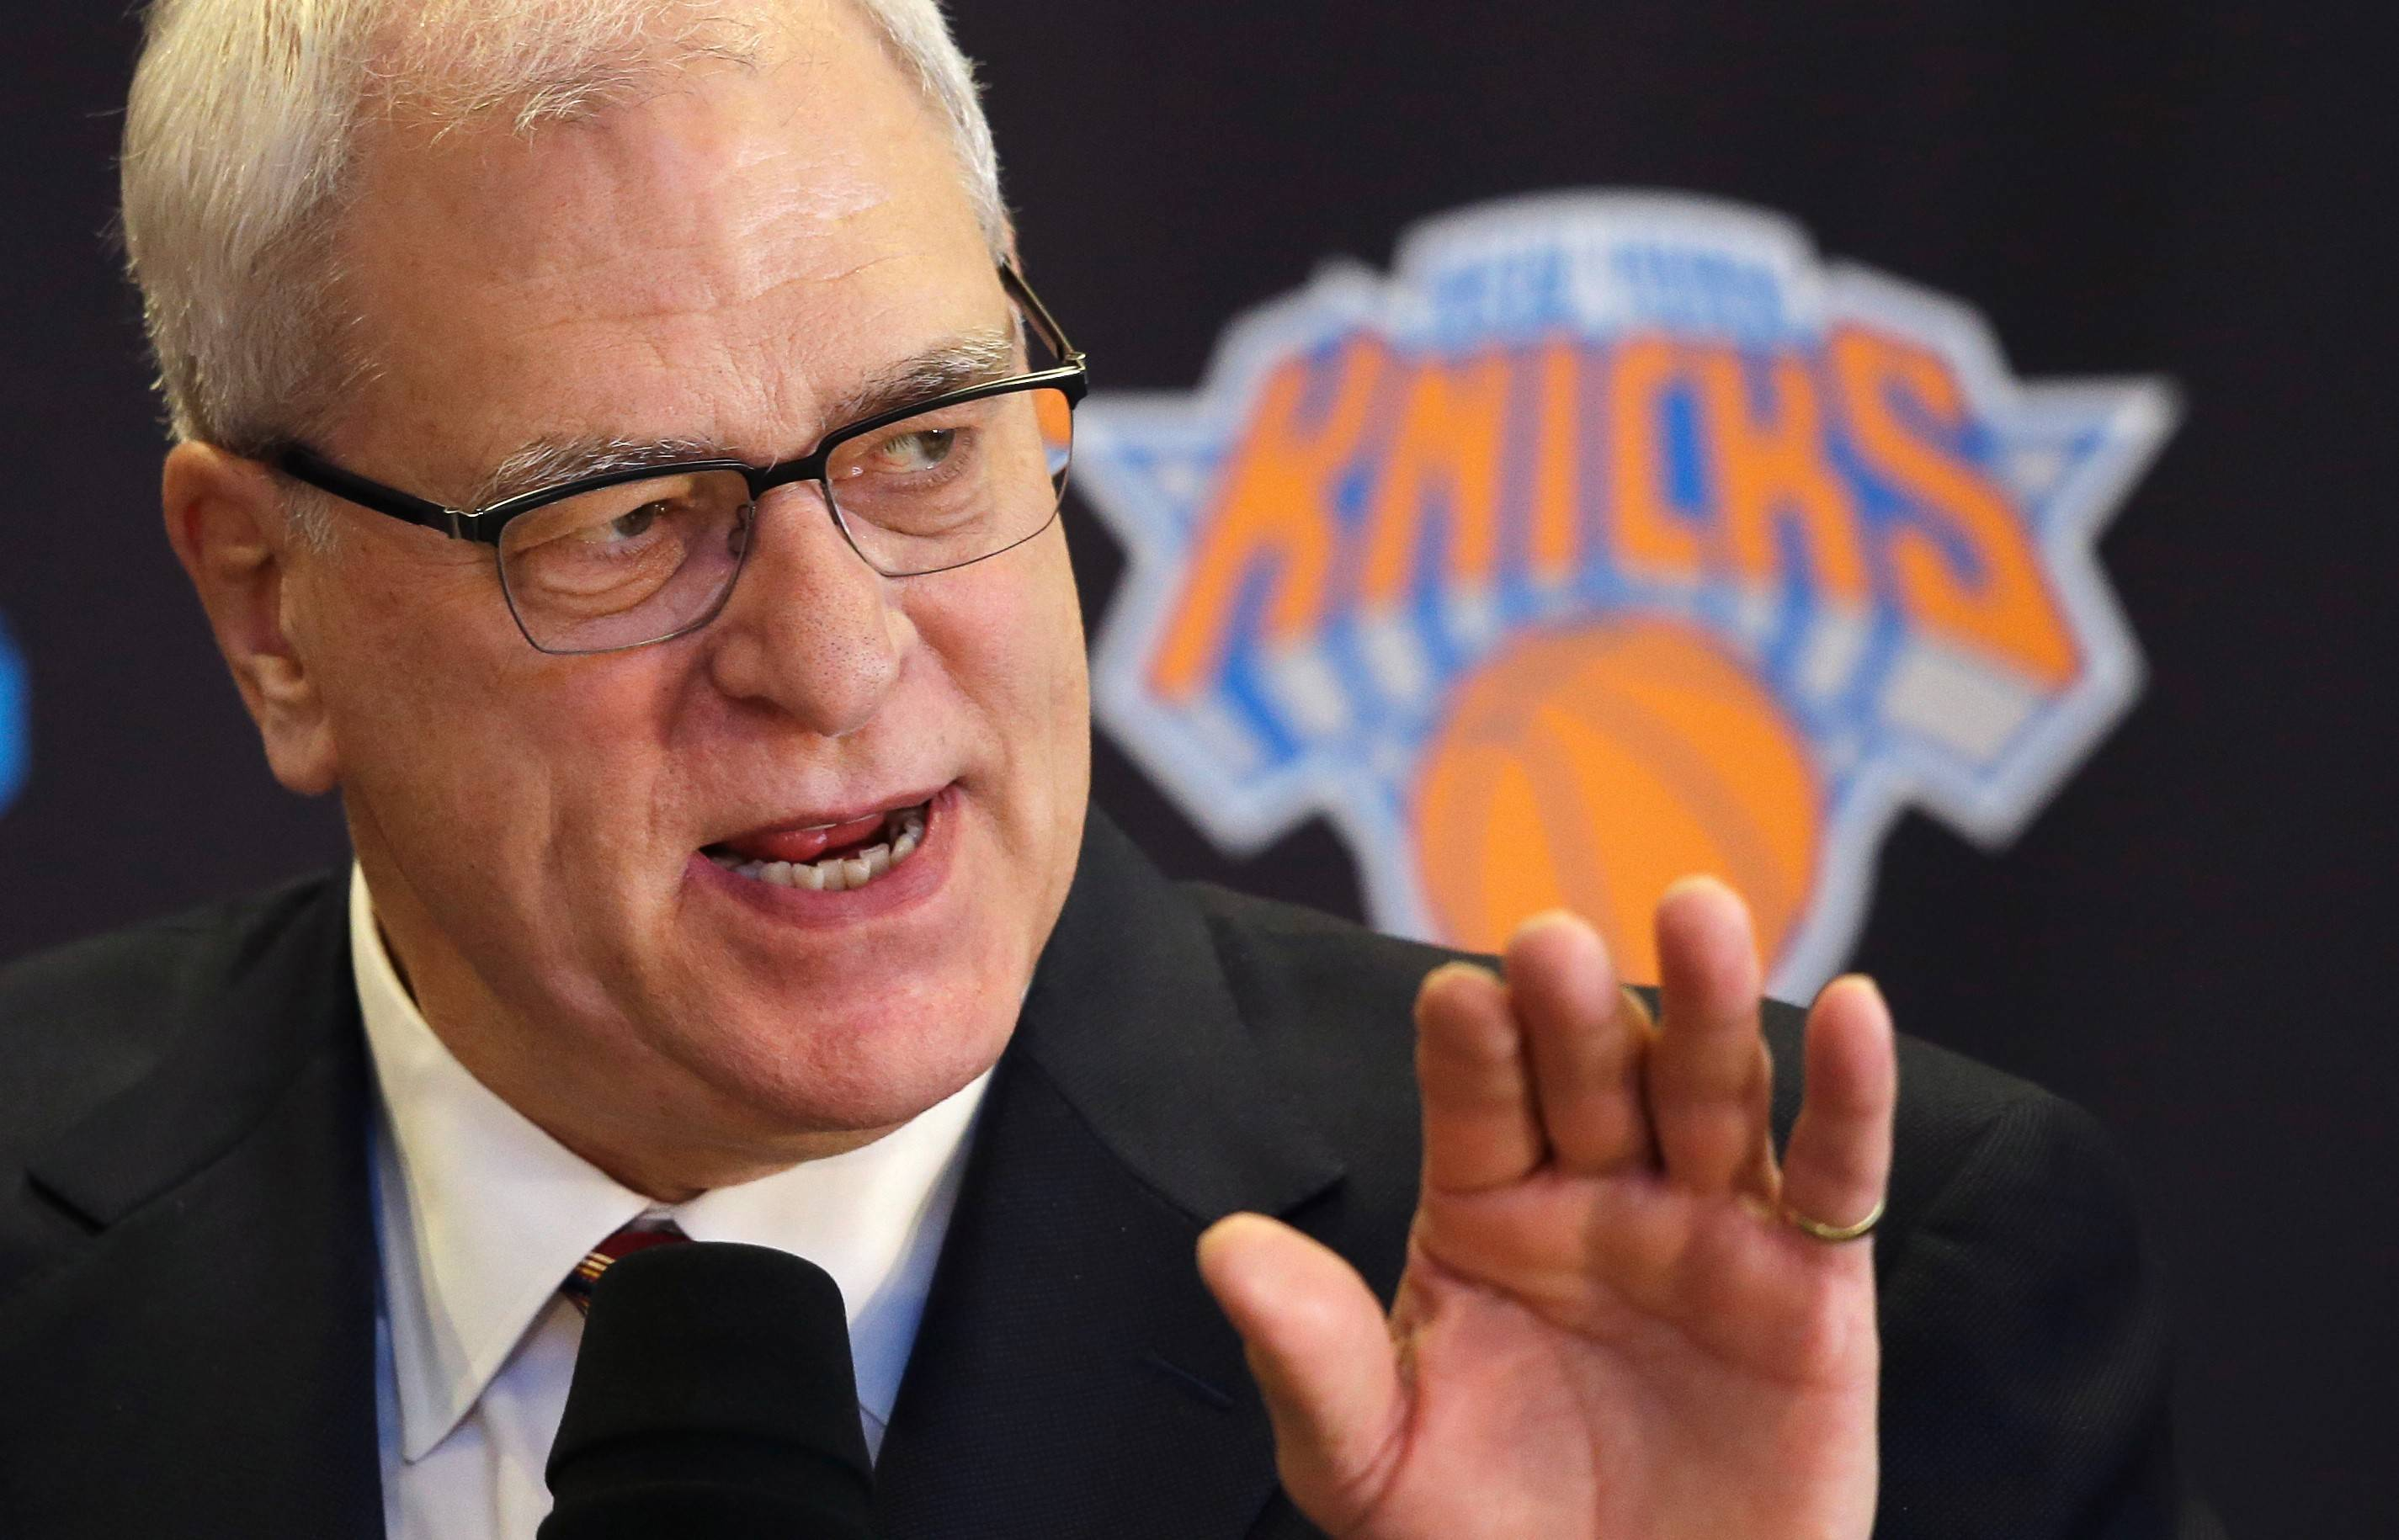 With Steve Kerr no longer an option, Phil Jackson, the new president of the New York Knicks, is still looking for a head coach.